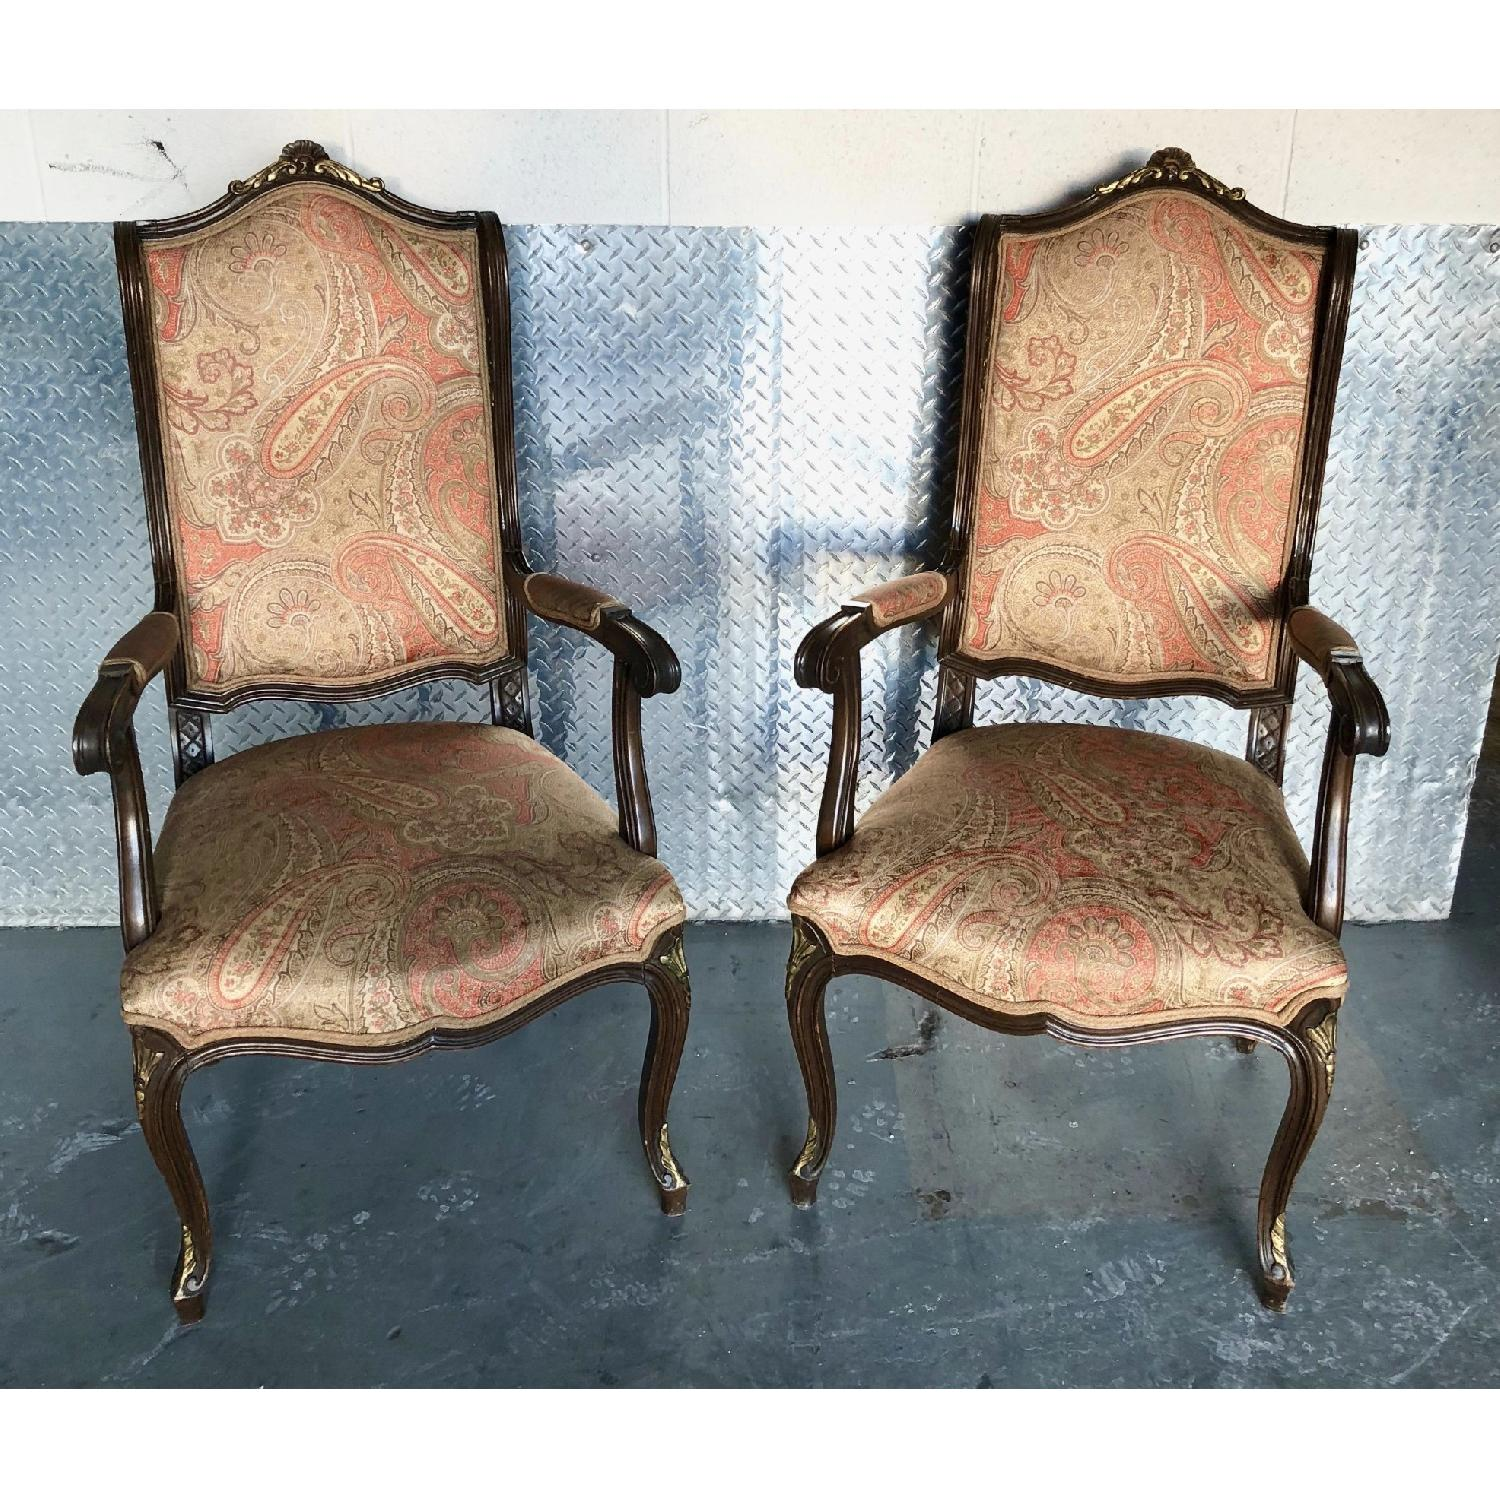 Antique French Chairs Upholstered in Etro Fabric